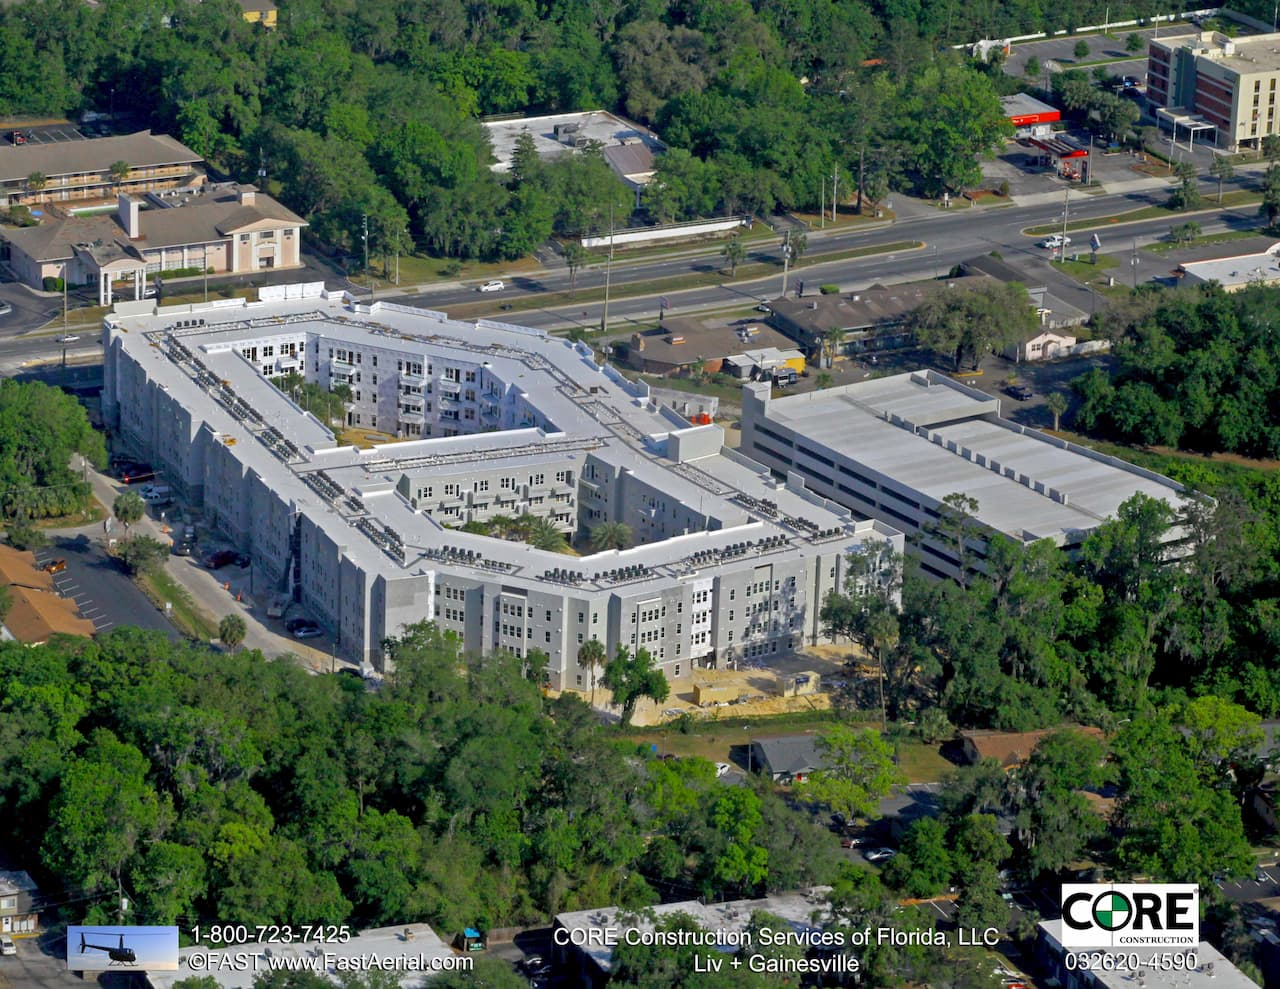 Aerial View of Liv+ Gainesville Apartments With Trees Surrounding It